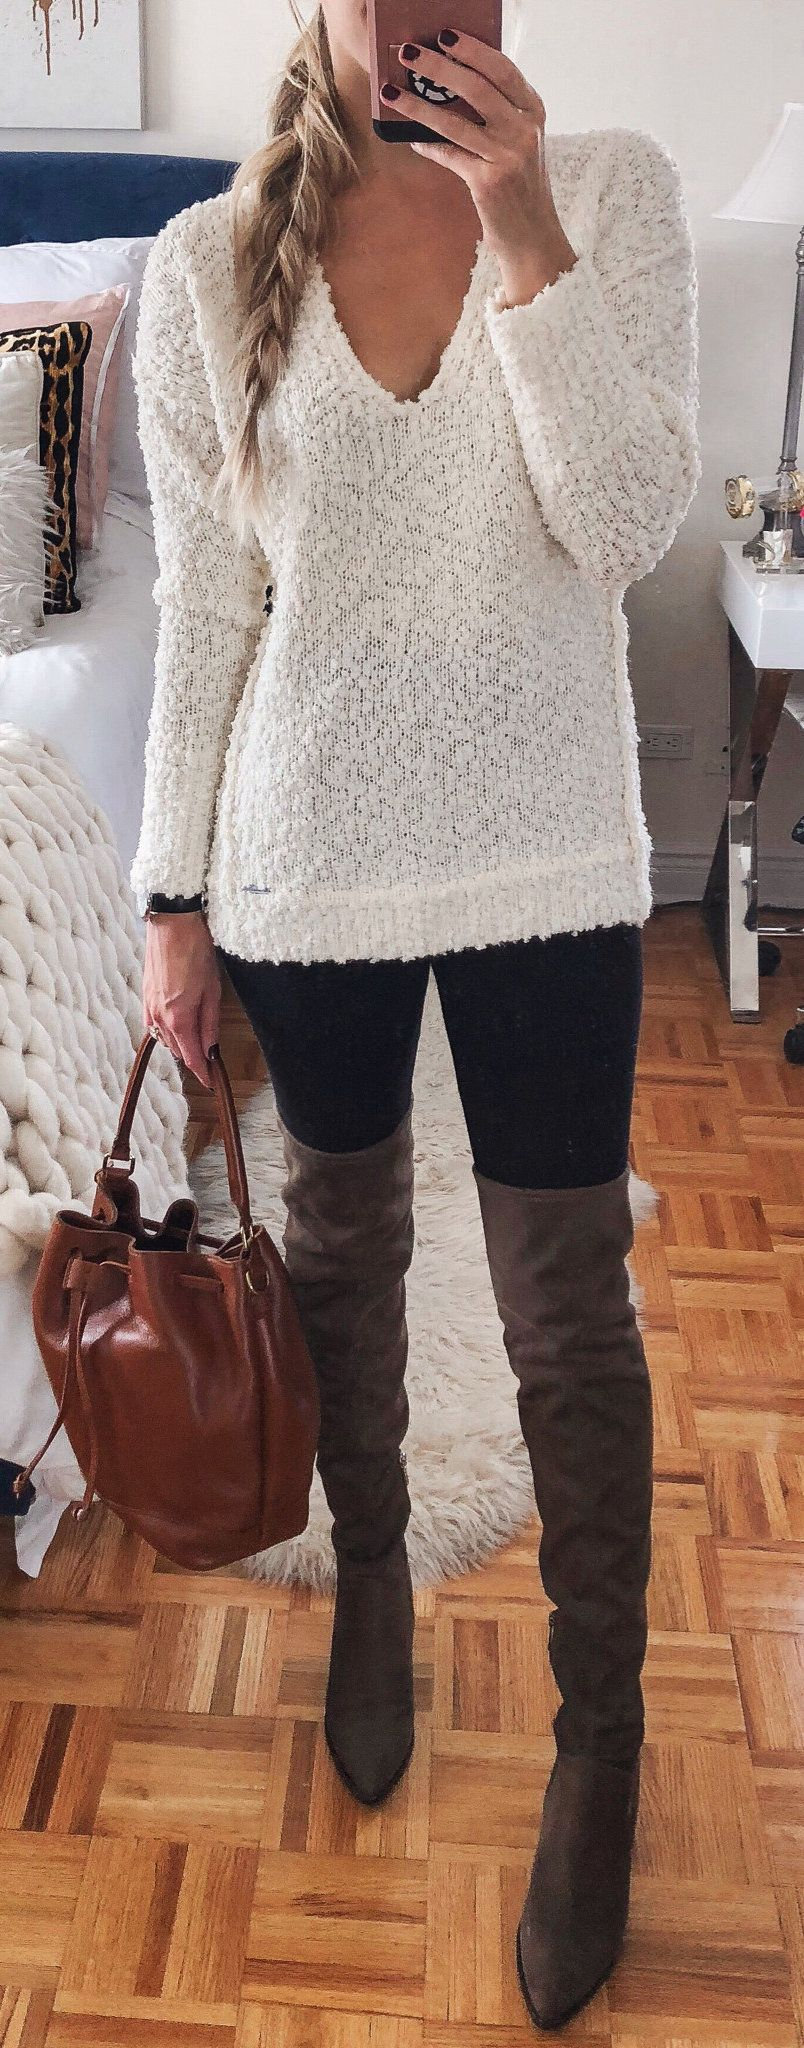 white scoop-neck knitted top